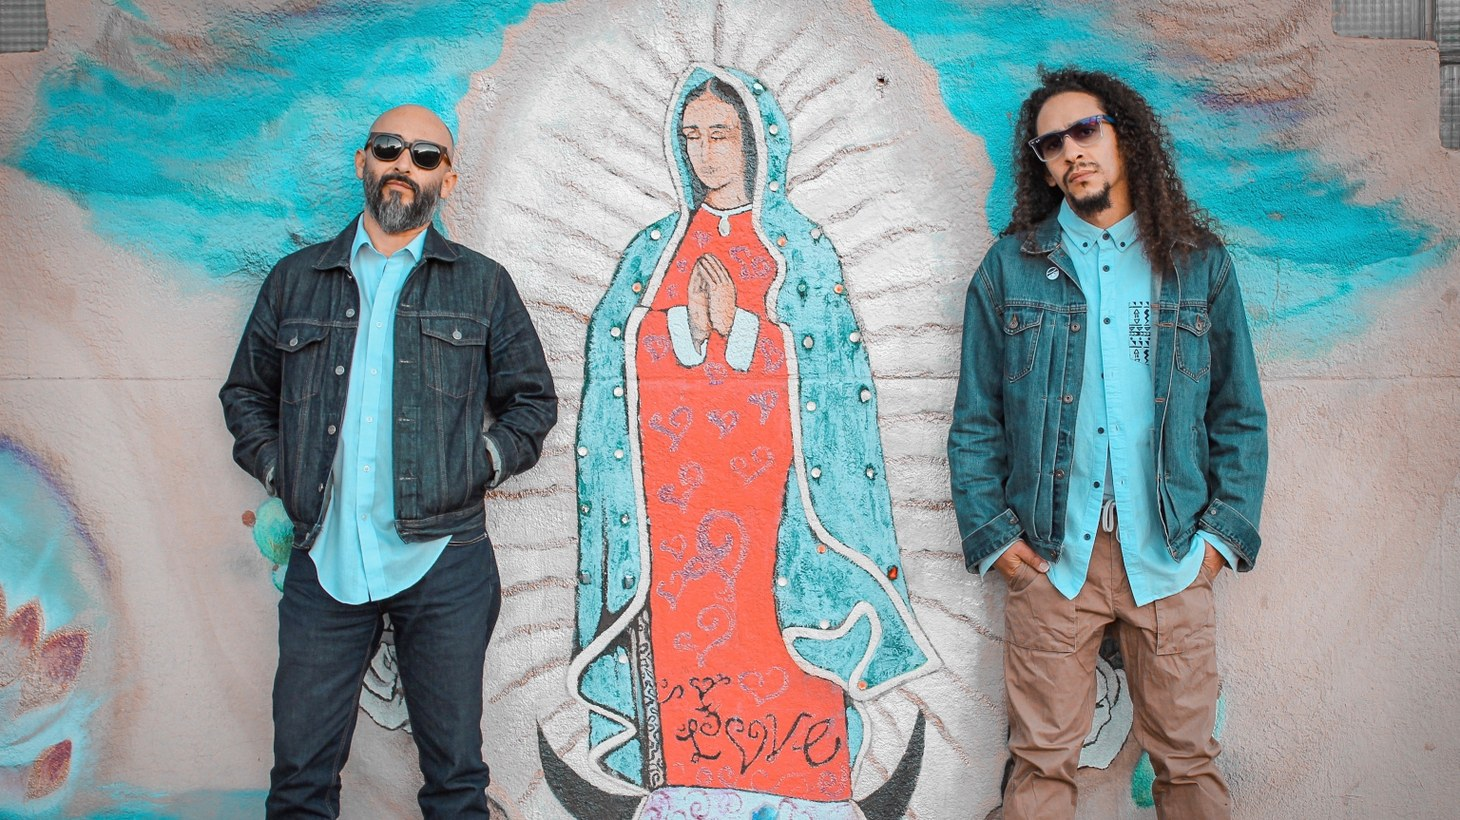 """When Raul Pacheco, a founding member of the Grammy Award-winning Ozomatli, was asked about his latest song, he proudly stated: """" It is an homage to the neighborhood I grew up in, Boyle Heights in Los Angeles."""